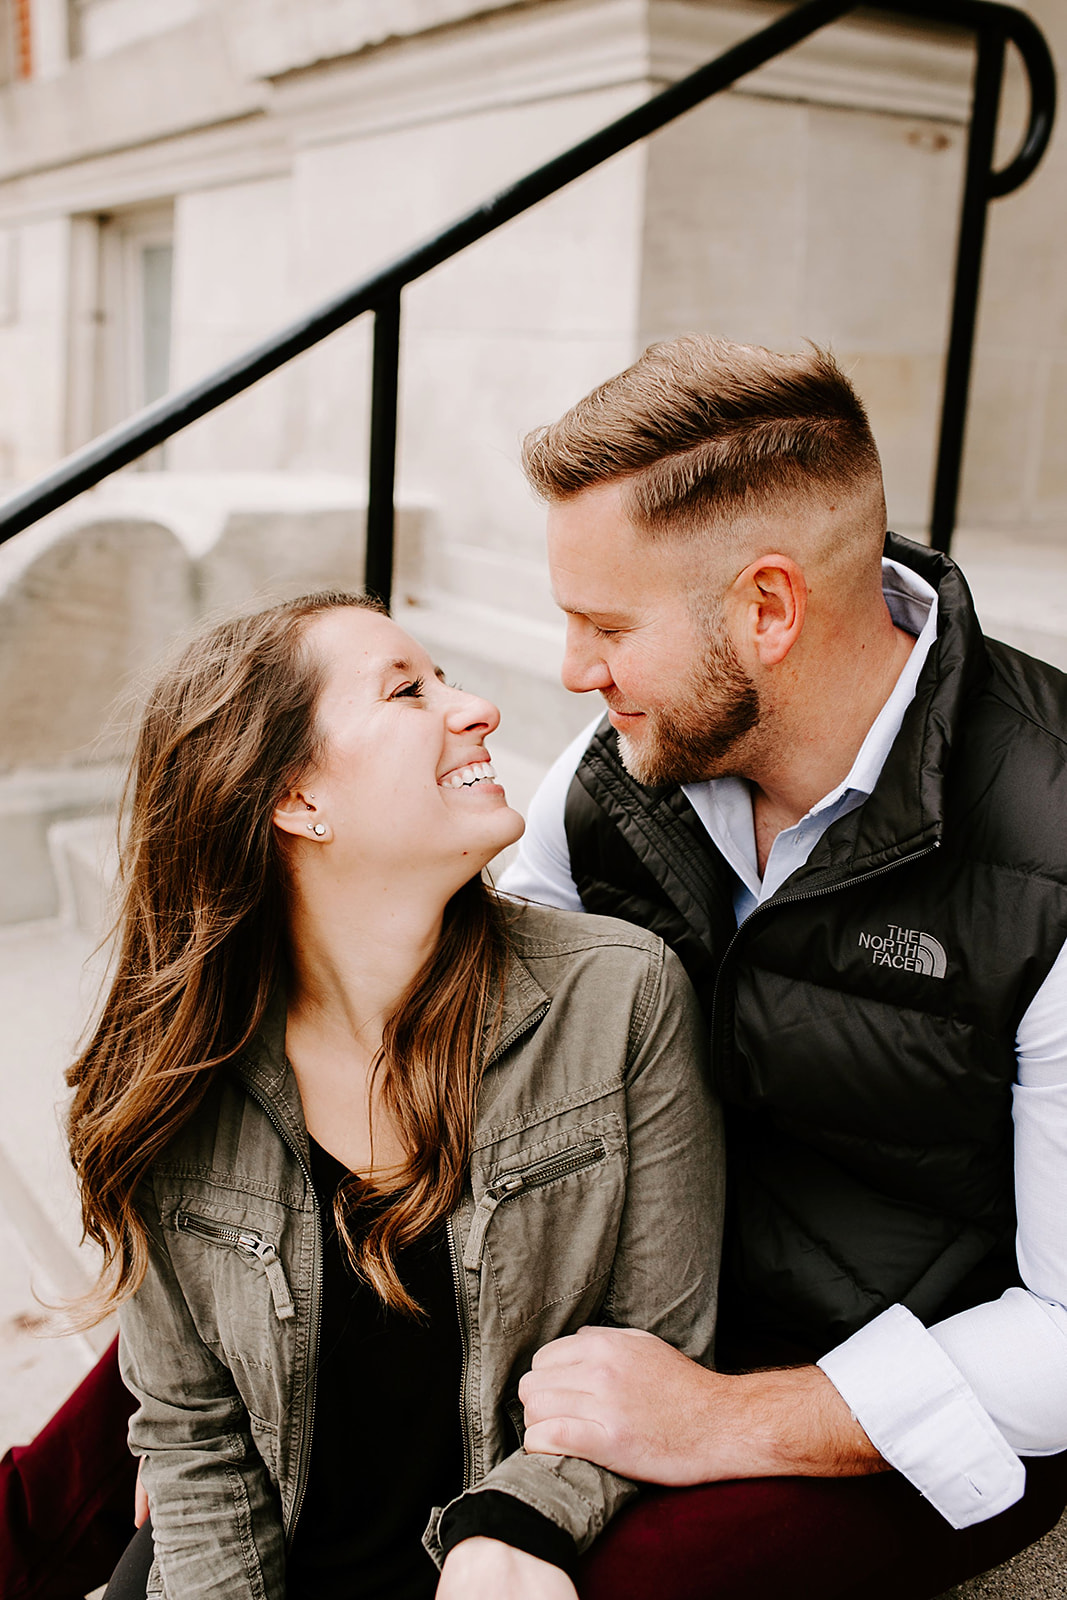 Holly and Michael Engagement Session in Noblesville Indiana by Emily Elyse Wehner Photography LLC-115.jpg